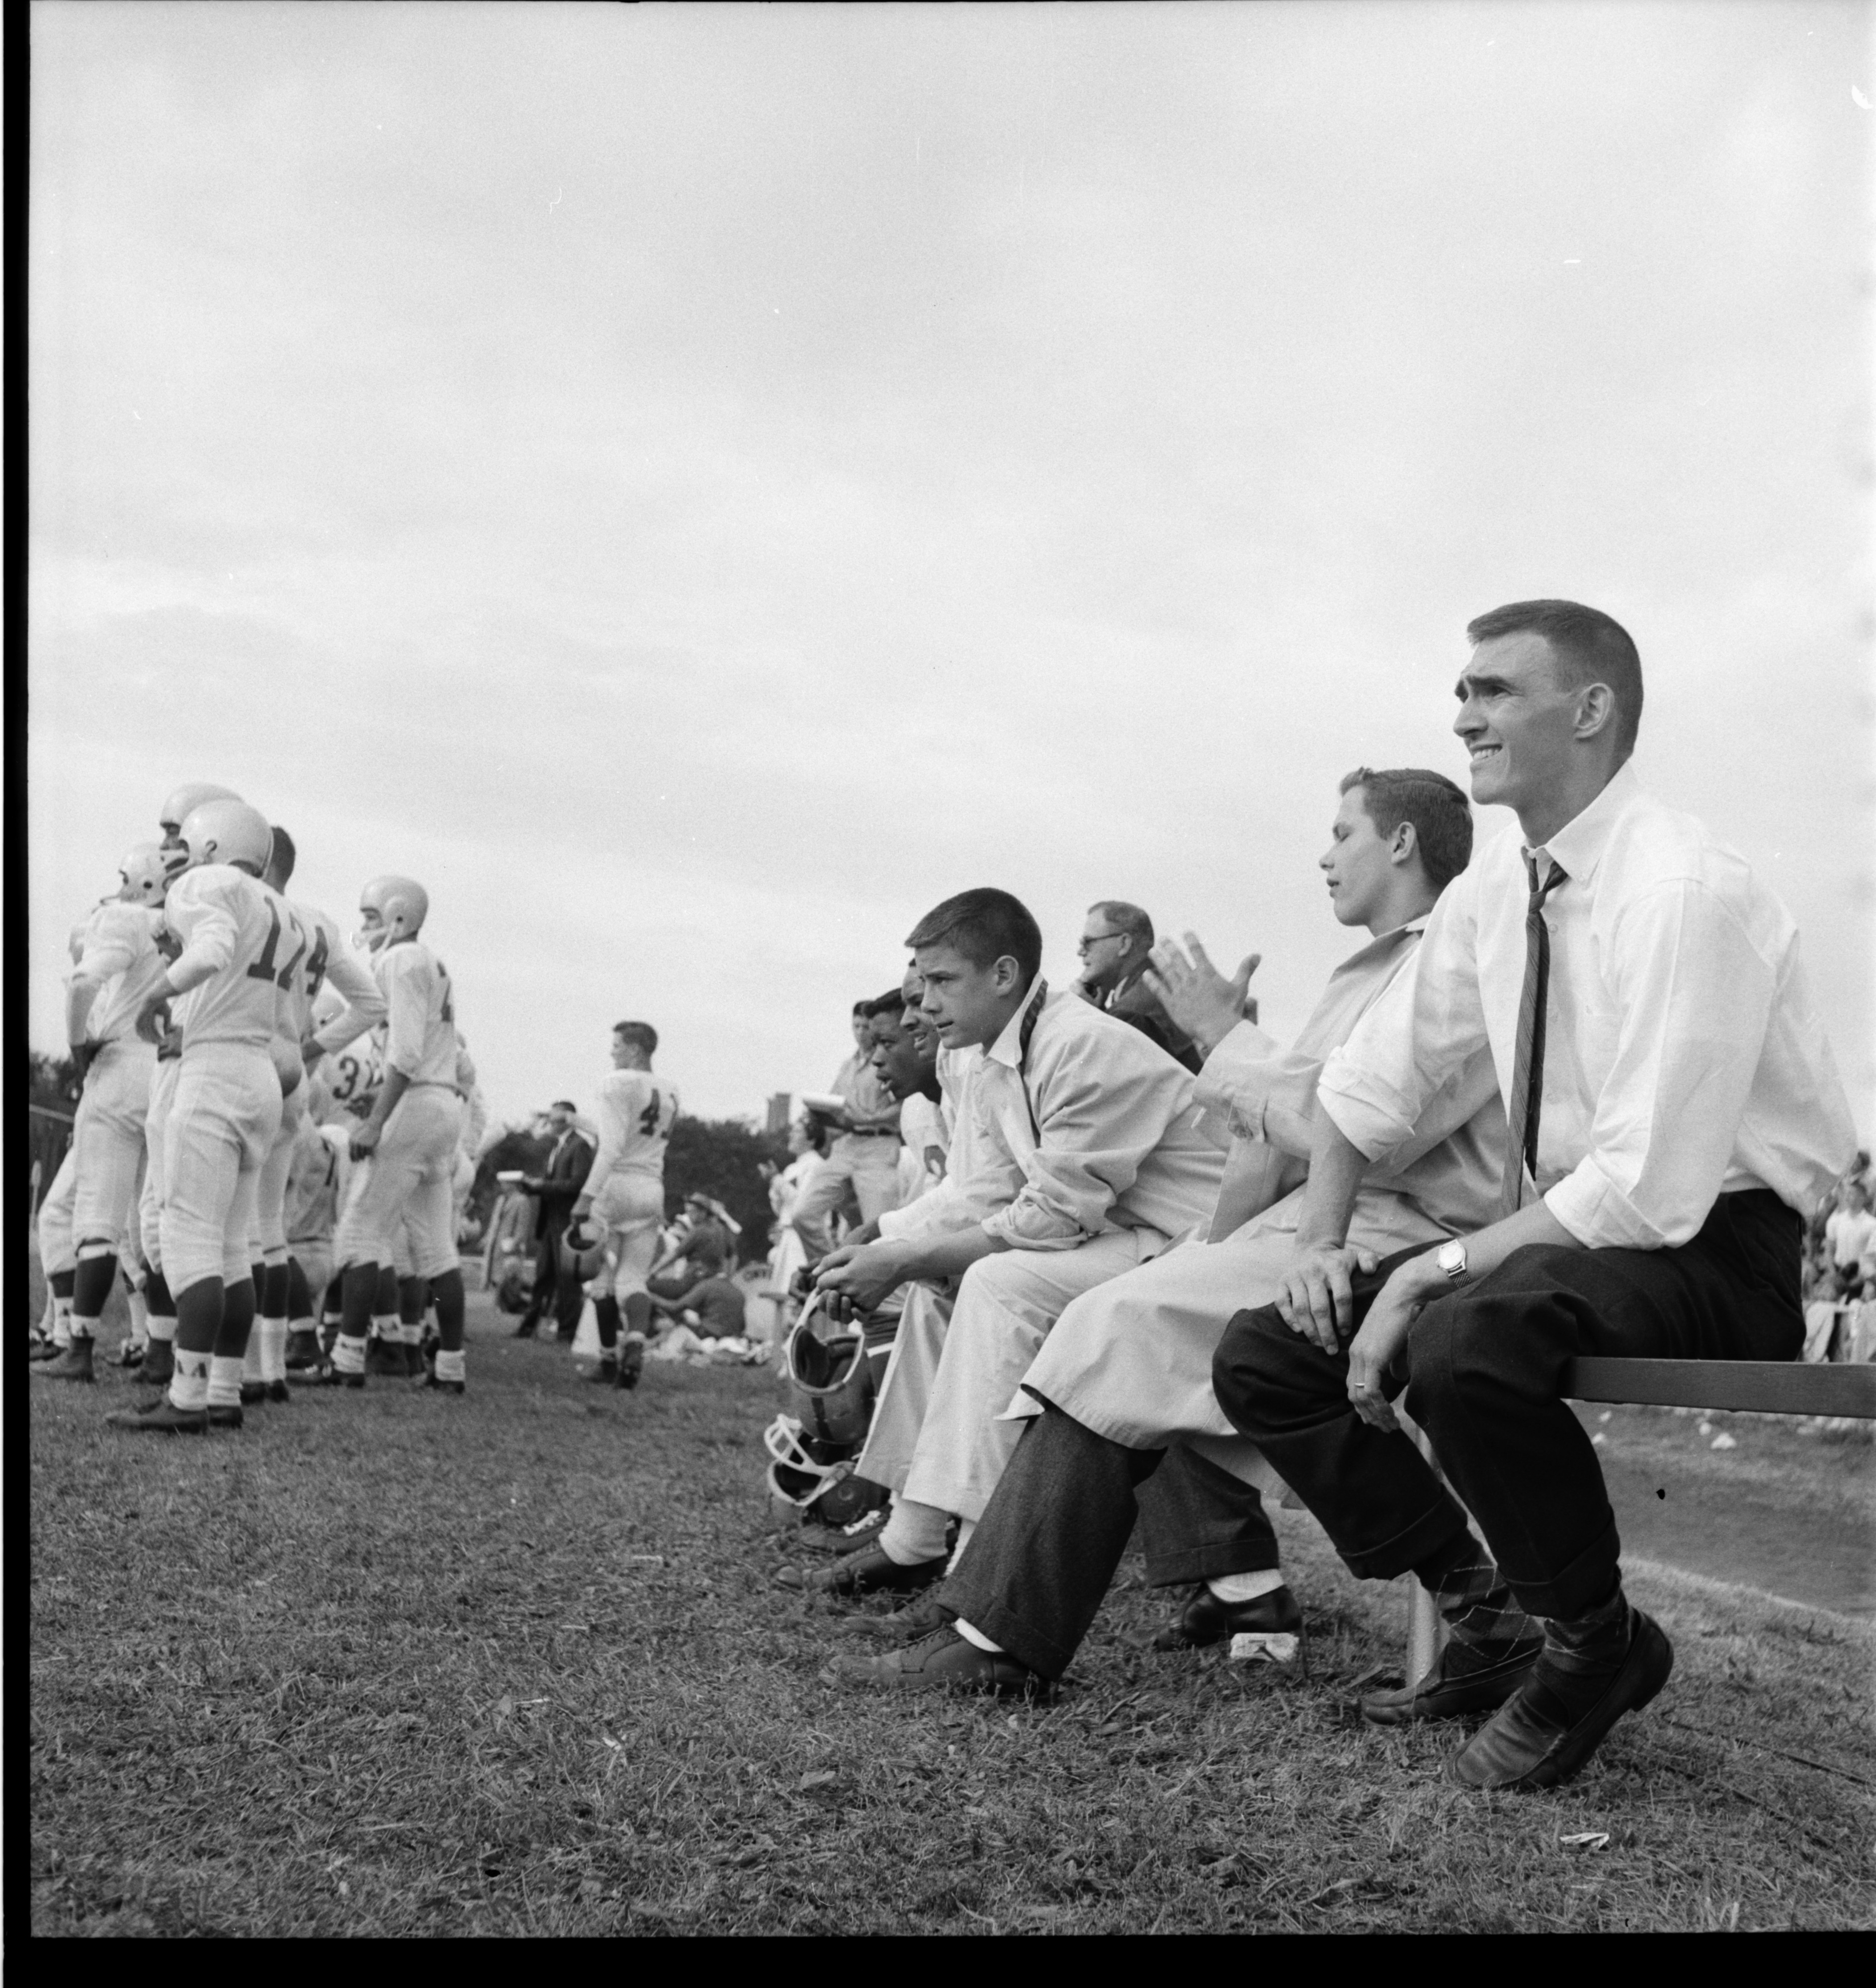 Coach Jay Stielstra and Team During Ann Arbor High vs. Grosse Pointe Football Game, September 1959 image